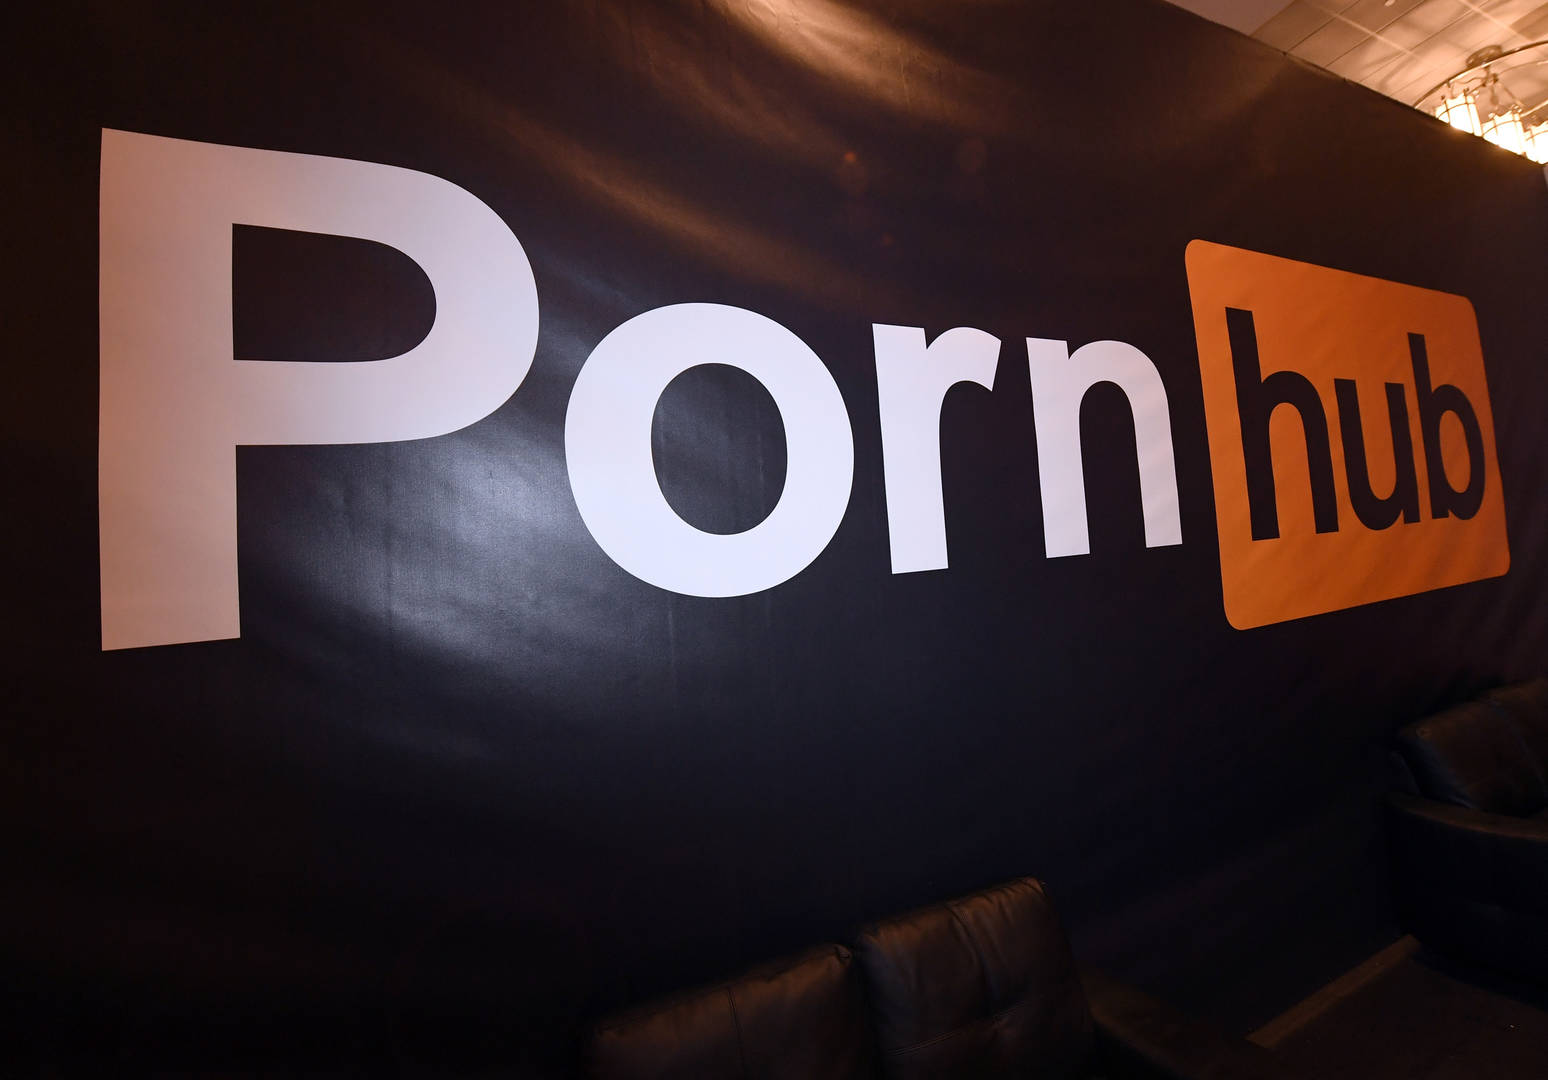 Pornhub porn sex trafficking petition shut down illegal content rape victim Exodus Cry website